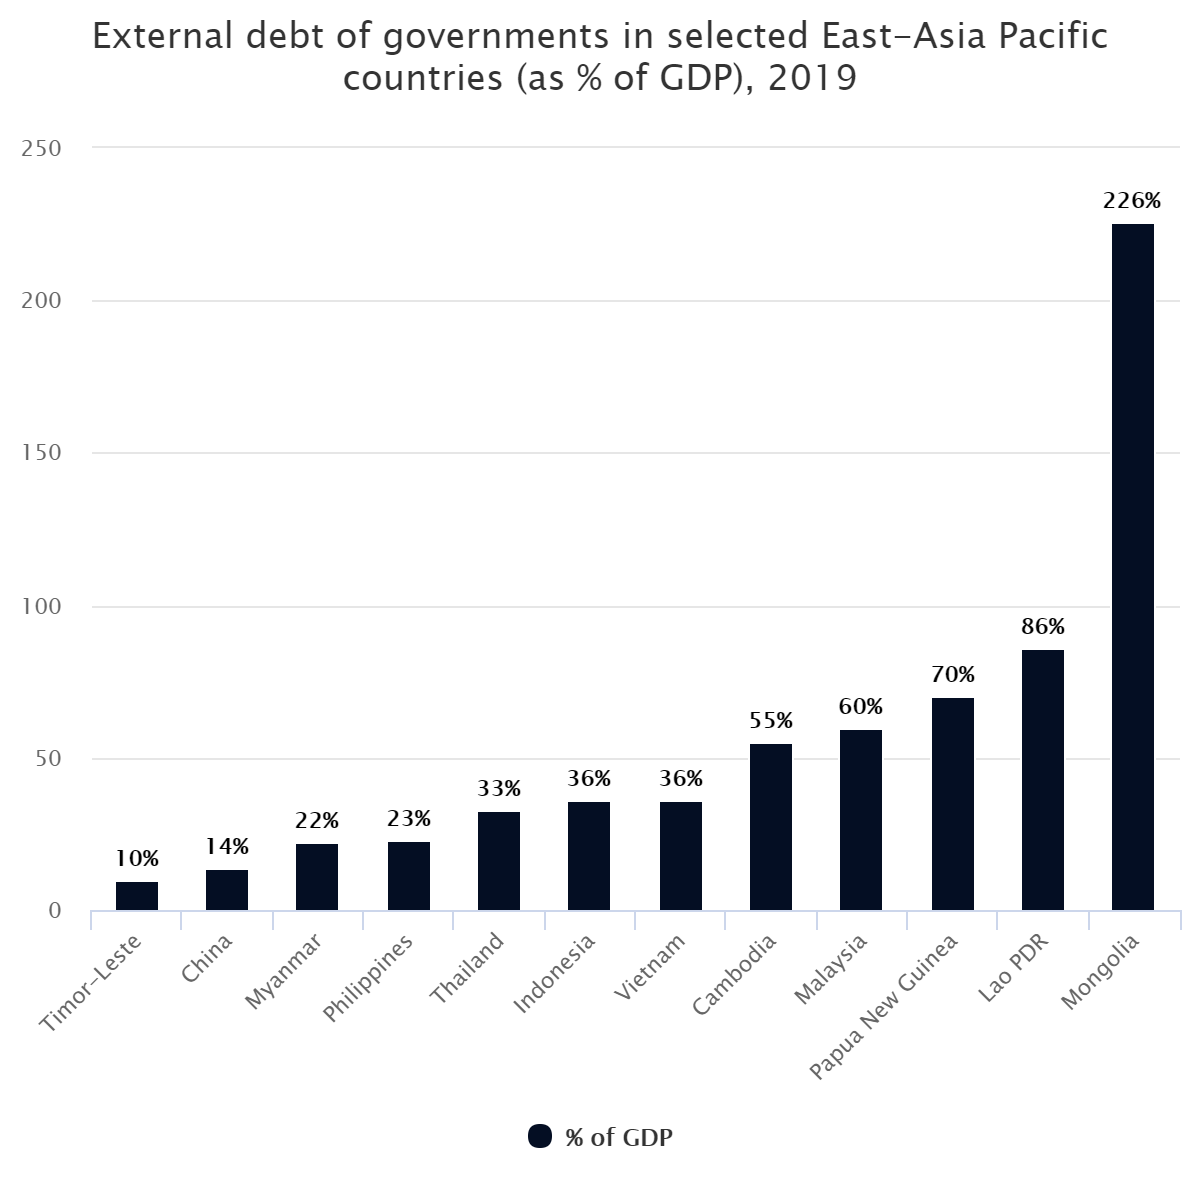 External debt of governments in selected East-Asia Pacific countries (as % of GDP), 2019